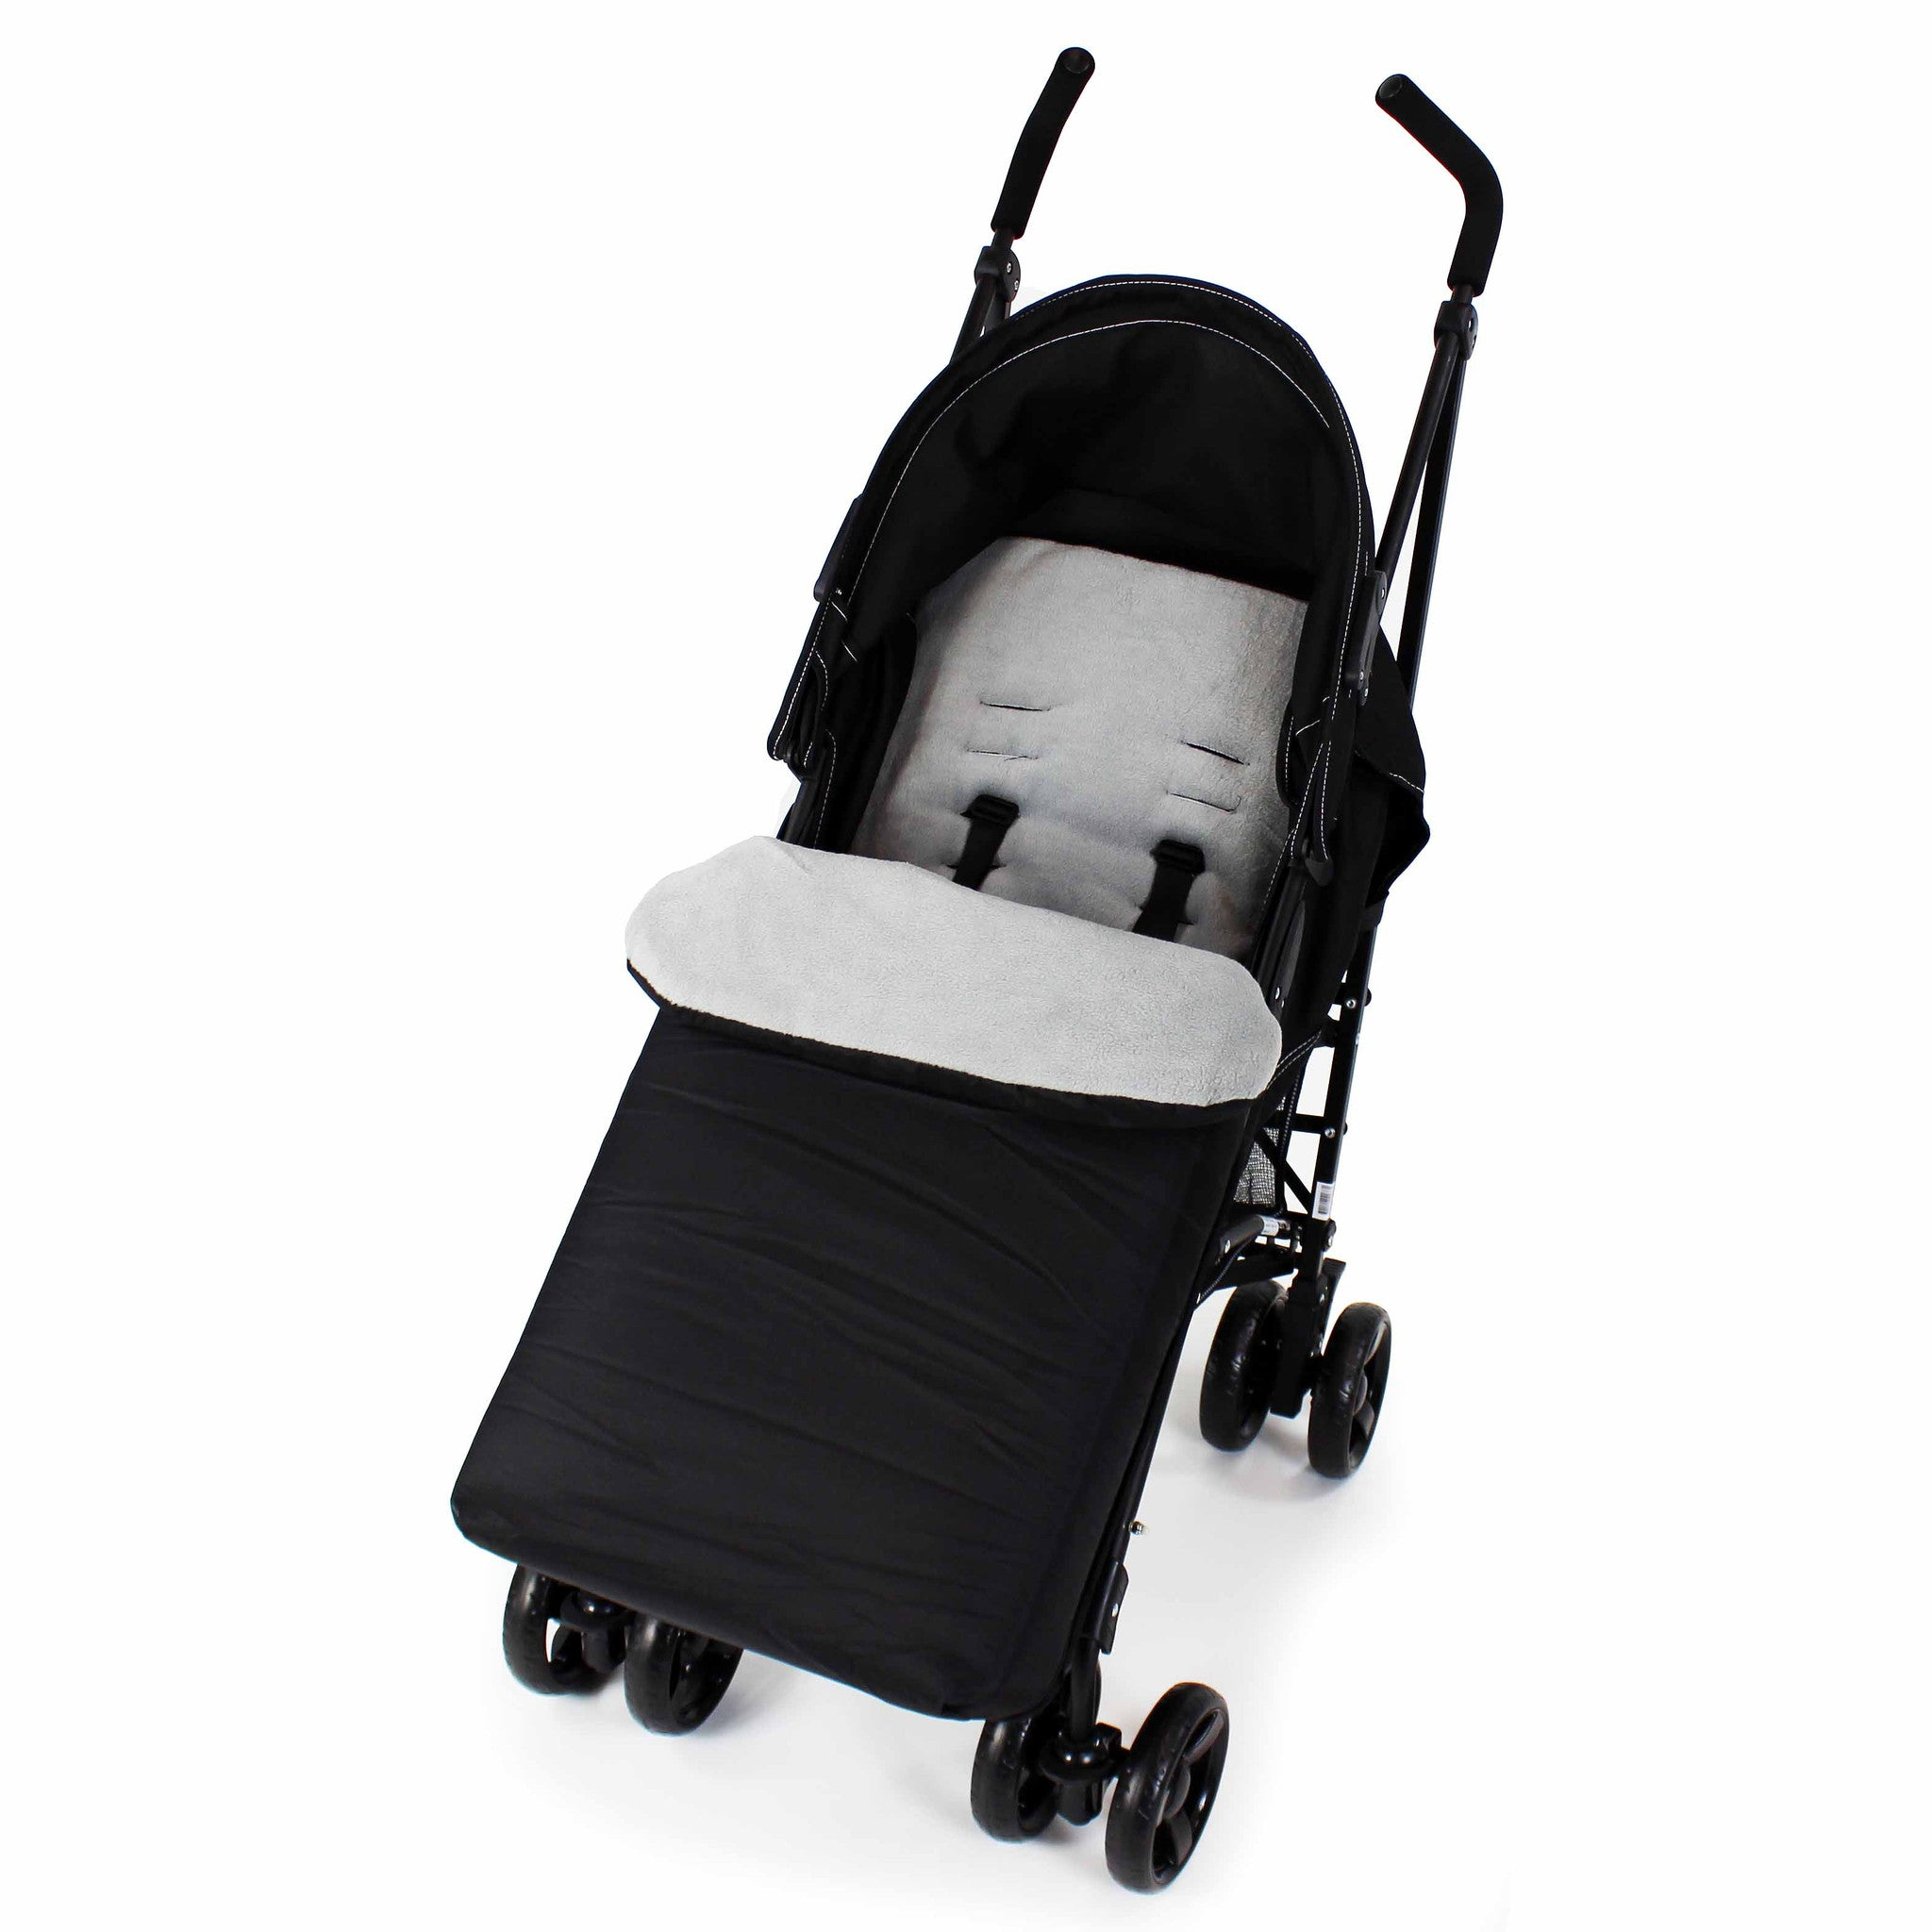 Universal Baby Stroller cosytoes Liner Buggy Padded Luxury Footmuff Black//Hot Chocolate